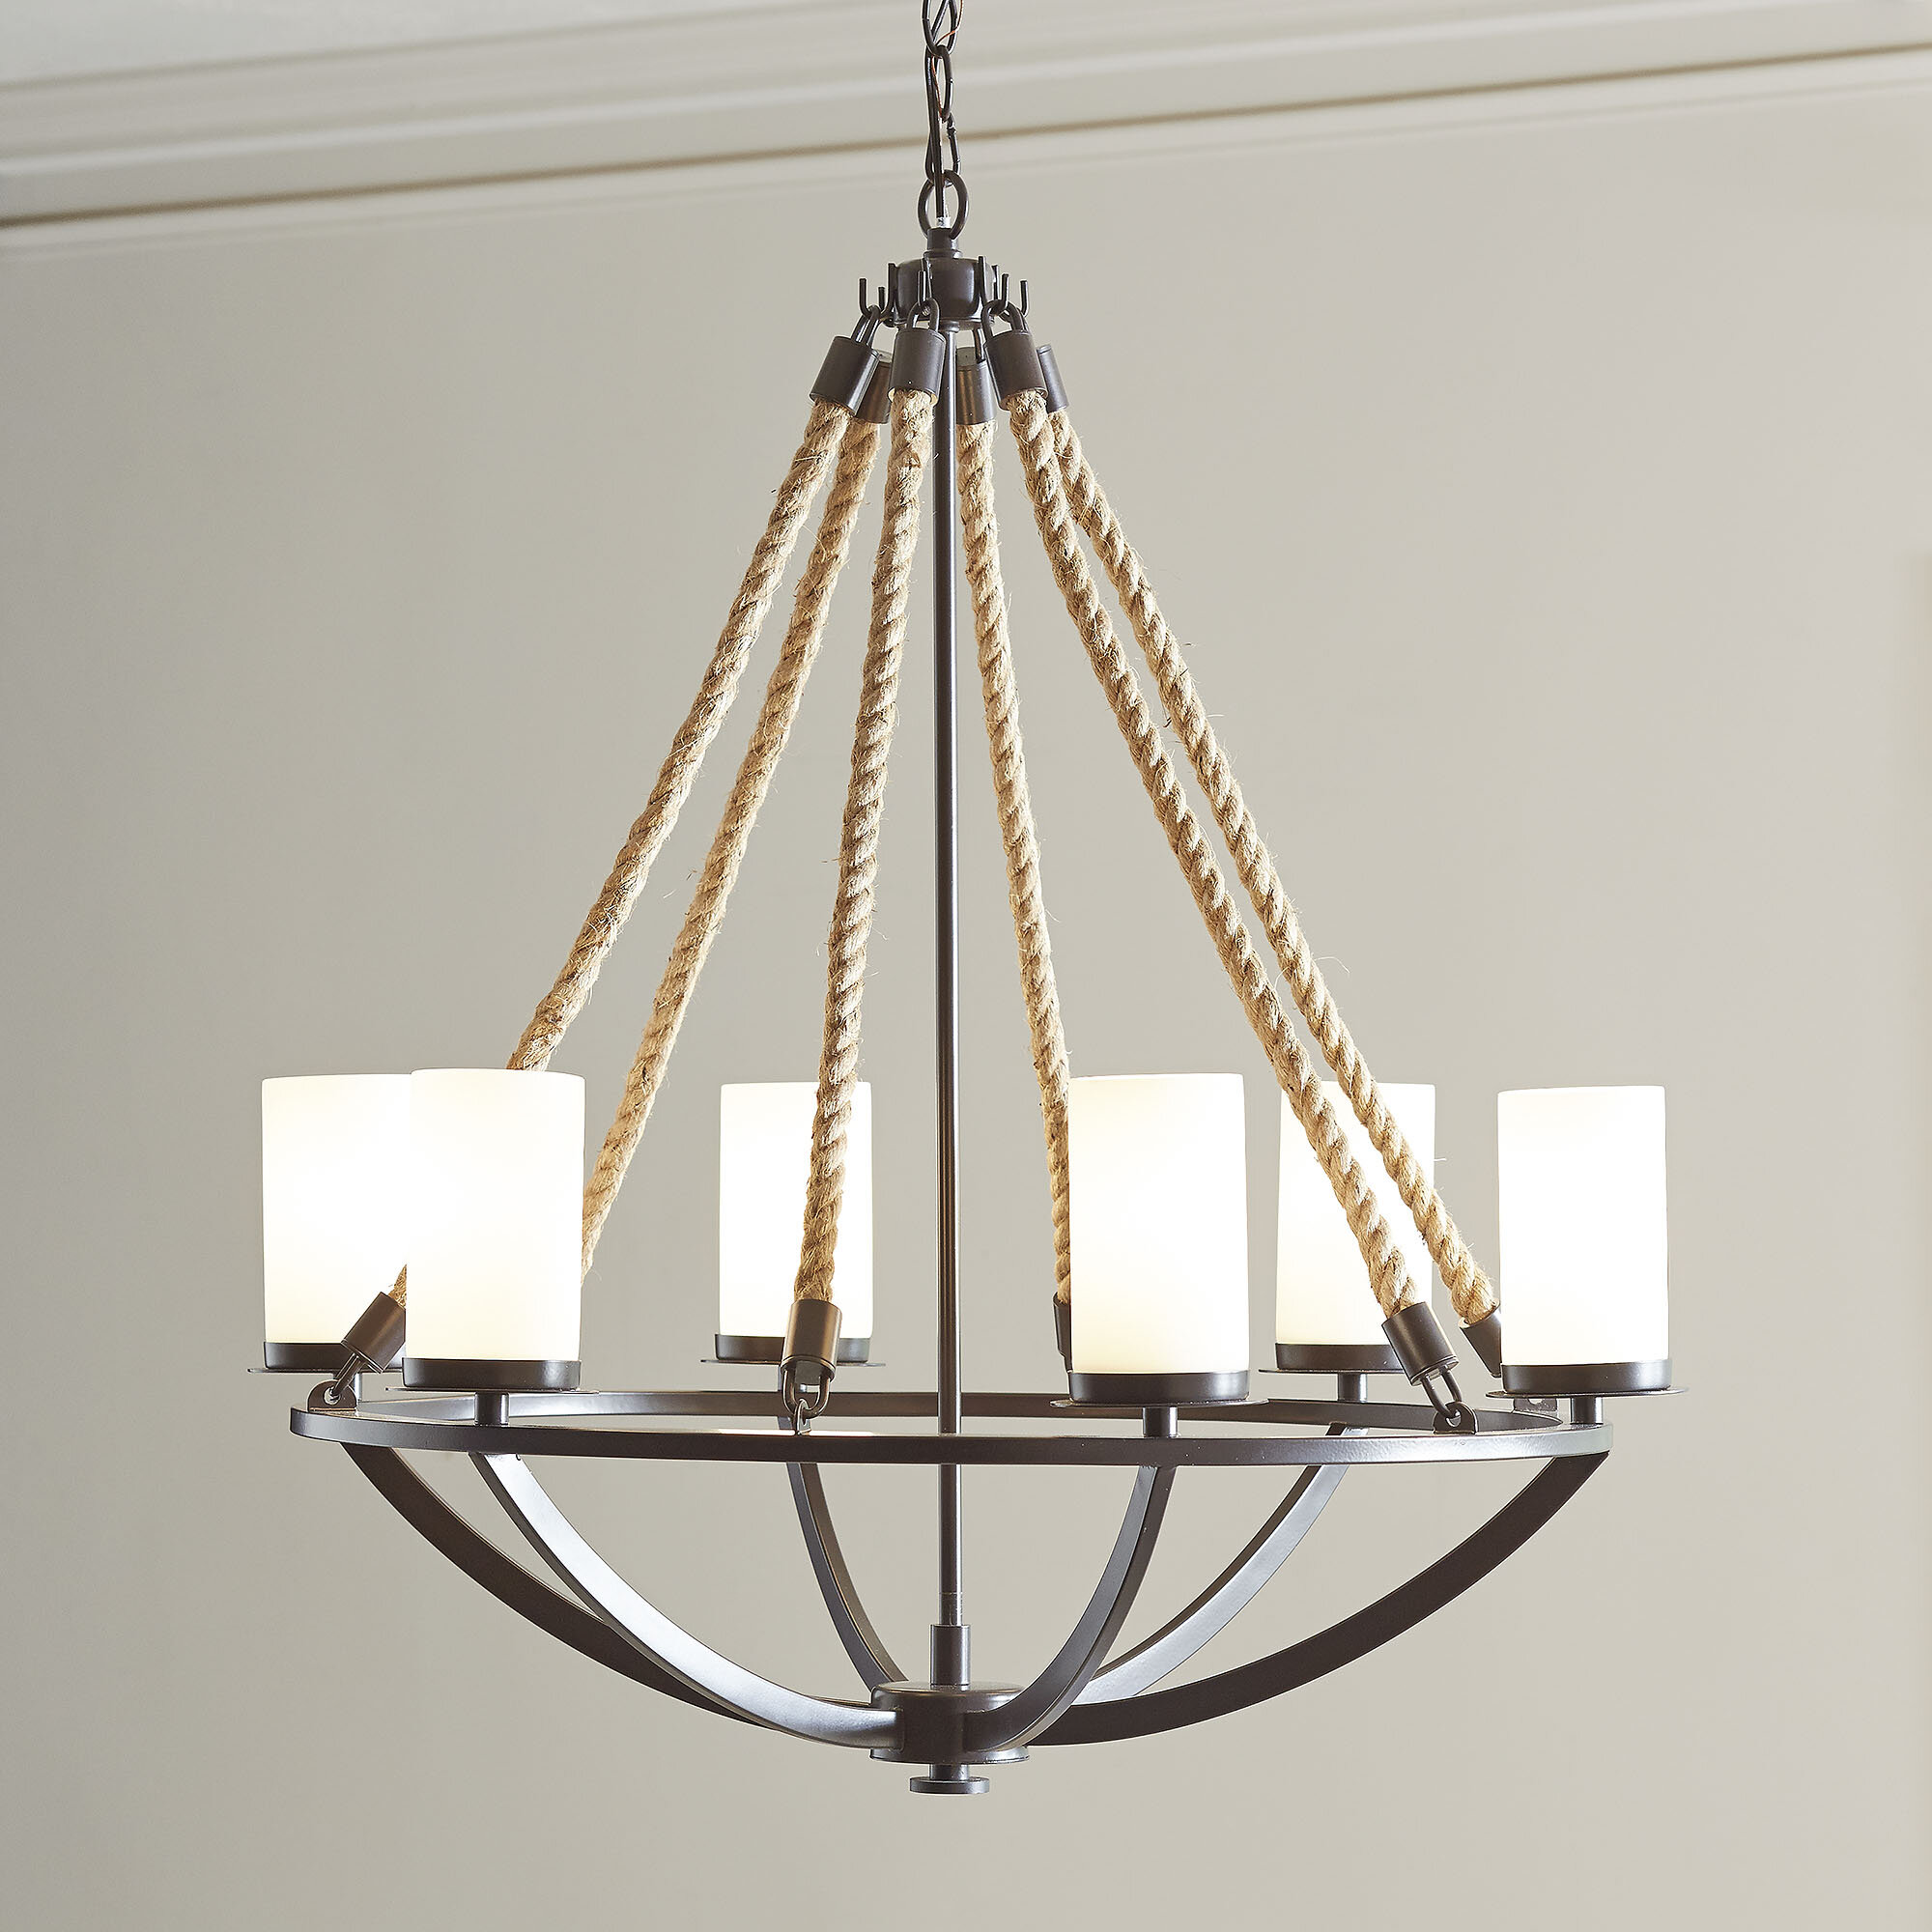 Worthington 6 Light Candle Style Chandelier & Reviews